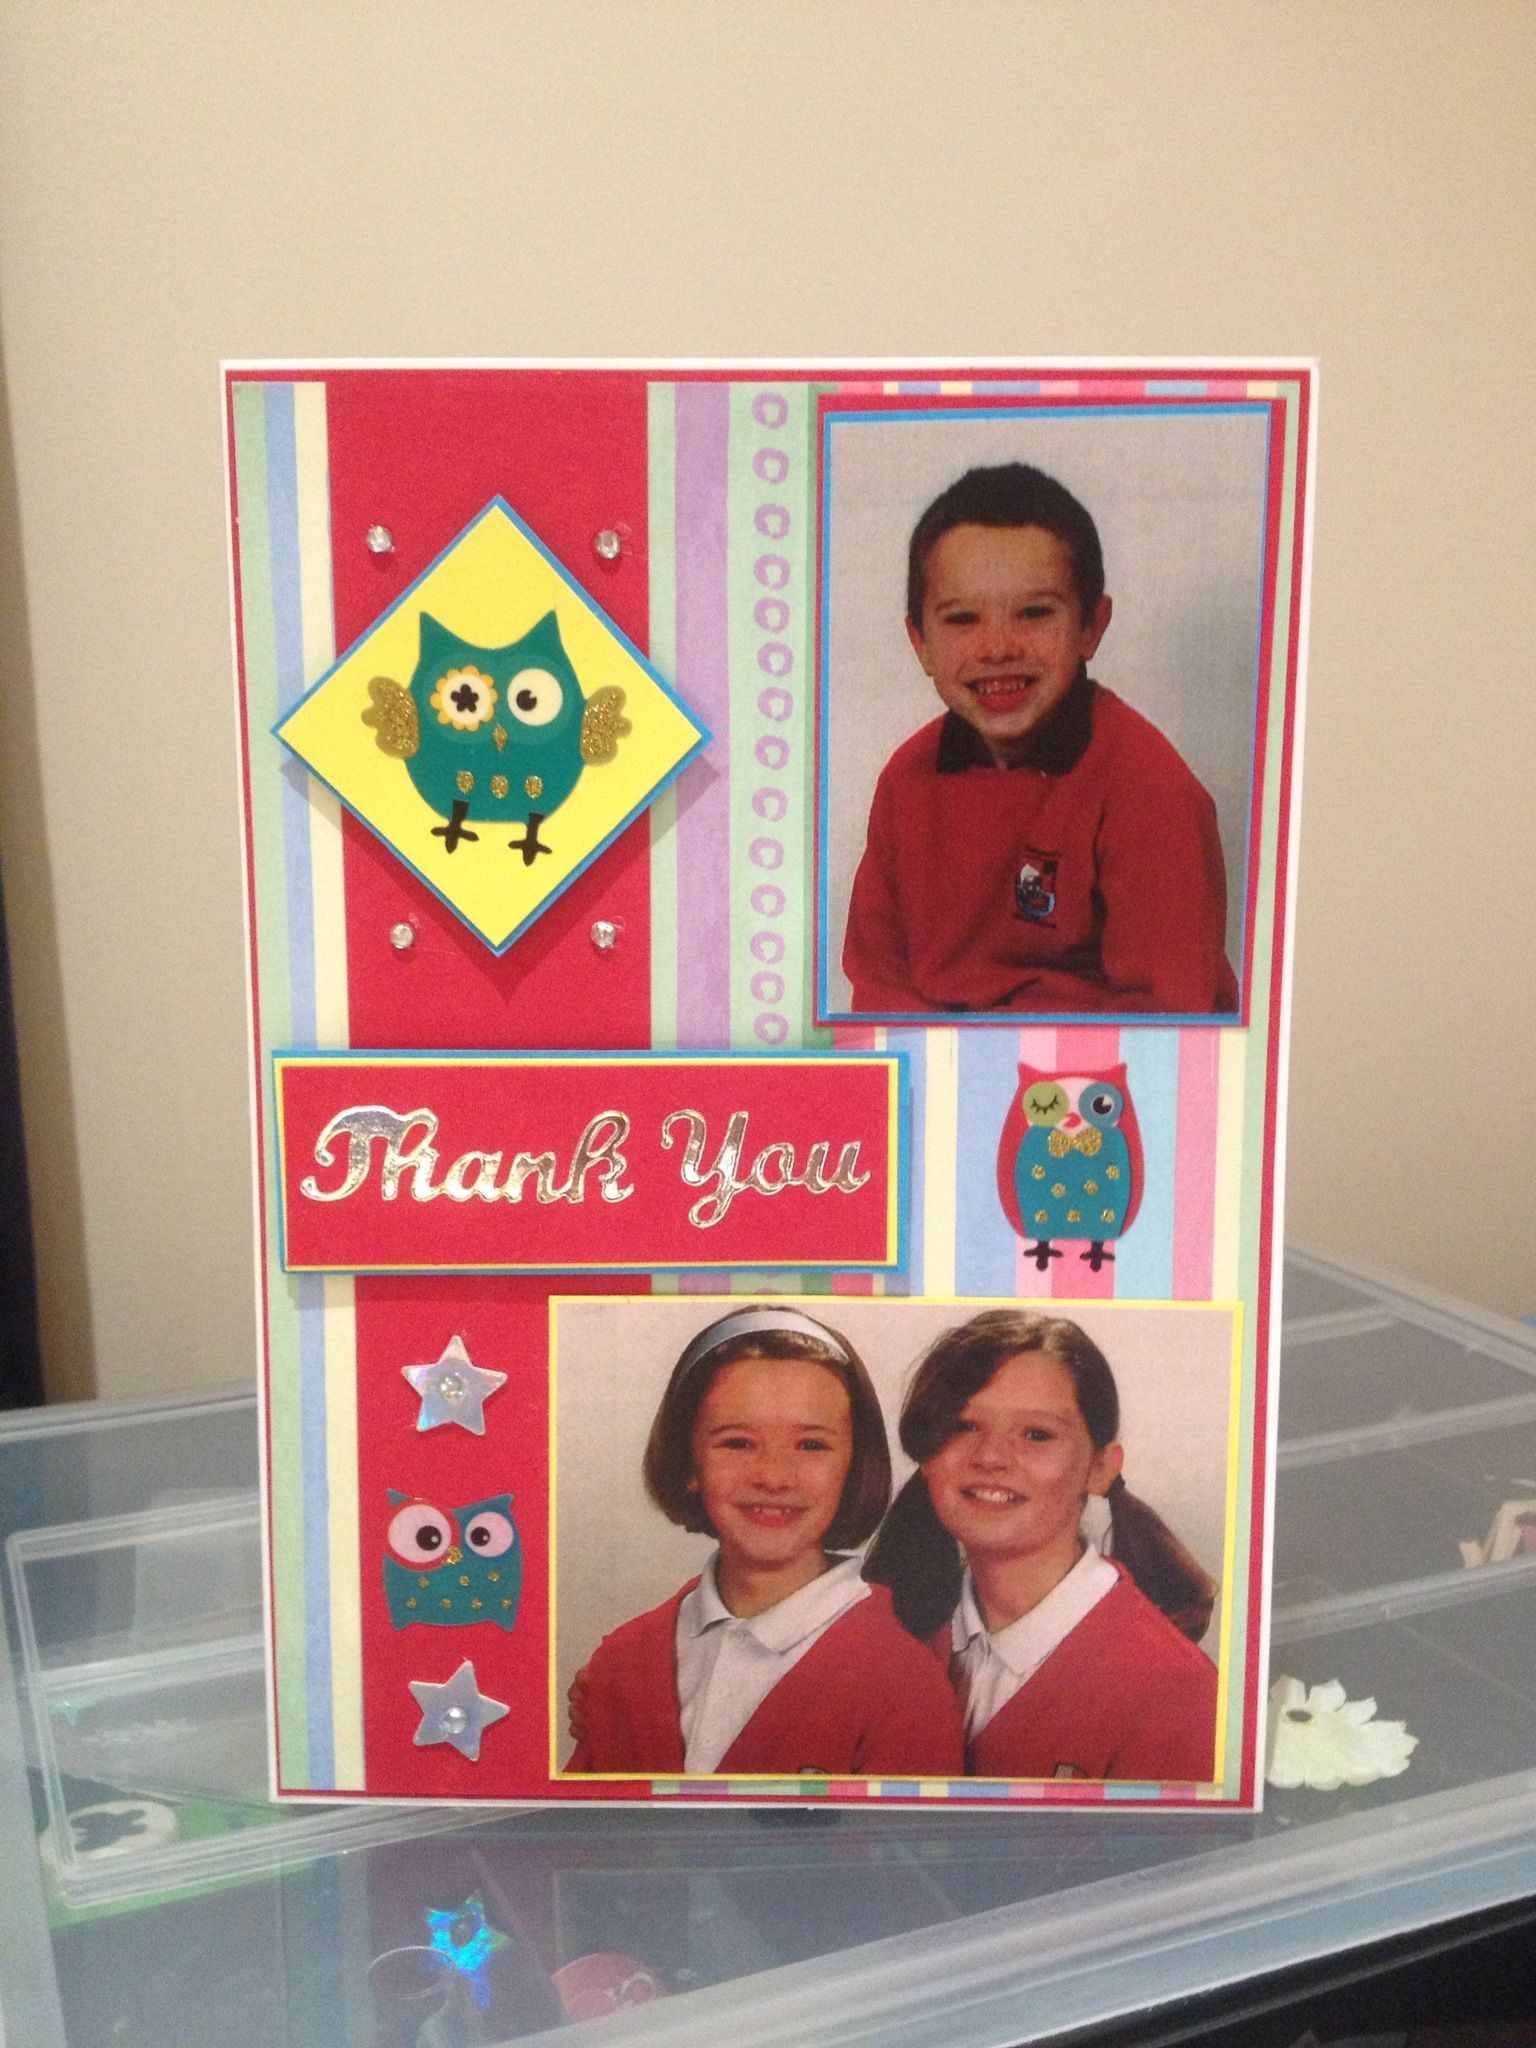 Personal thankyou card for school, with photos - By Bethany Looijenga